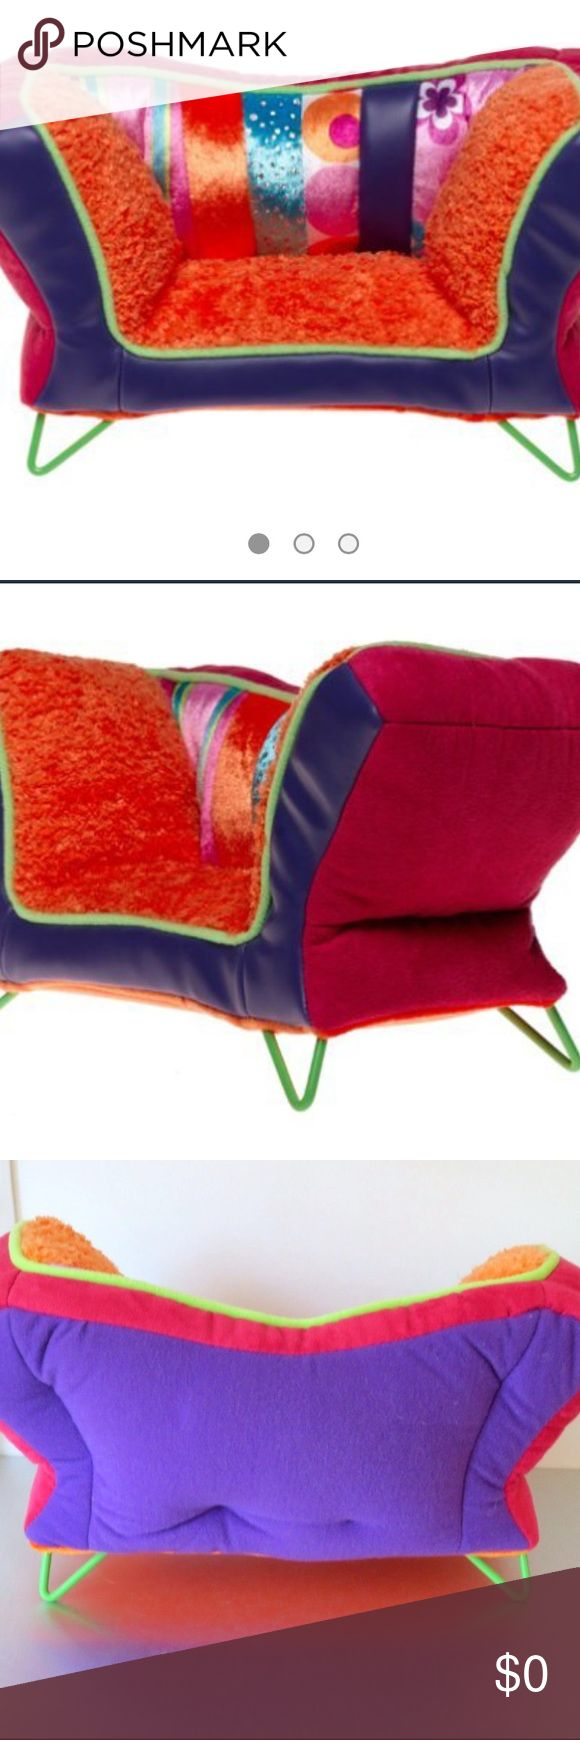 Groovy Girls Groovy Style Suoernova Sofa Groovy Girls Groovy Style Supernova Sofa (Collectible and not available).Decorate your Groovy Girls living room area with this Wild & wacky Sofa.Made of polyester, polyurethane & wire, this brightly colored stuffed toy shaped like a Sofa sports an eye popping color scheme of orange, blue, green, fuchsia & purple.Four lime green wire legs hold the piece in place just waiting for a groovy doll (sold separately). 6Hx12Wx5L PERFECT CONDITION. (Look for…